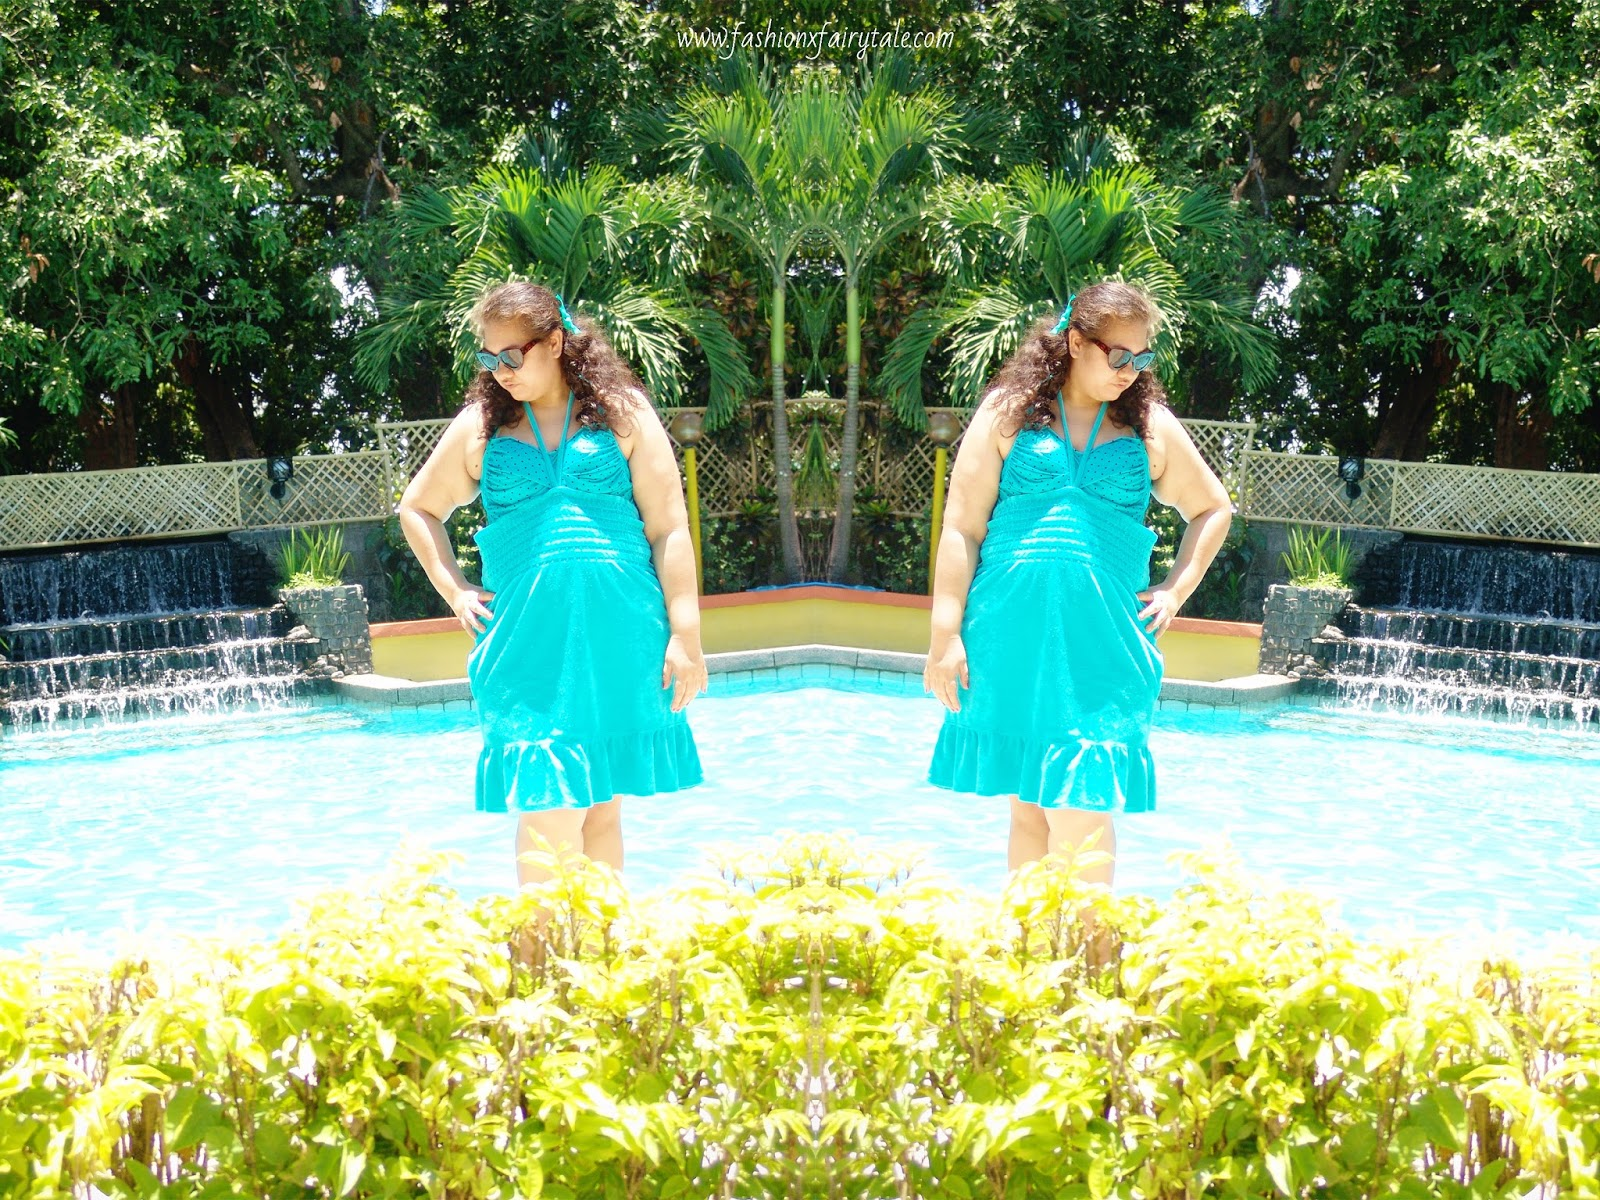 Pool Party Mermaid | What I Wore